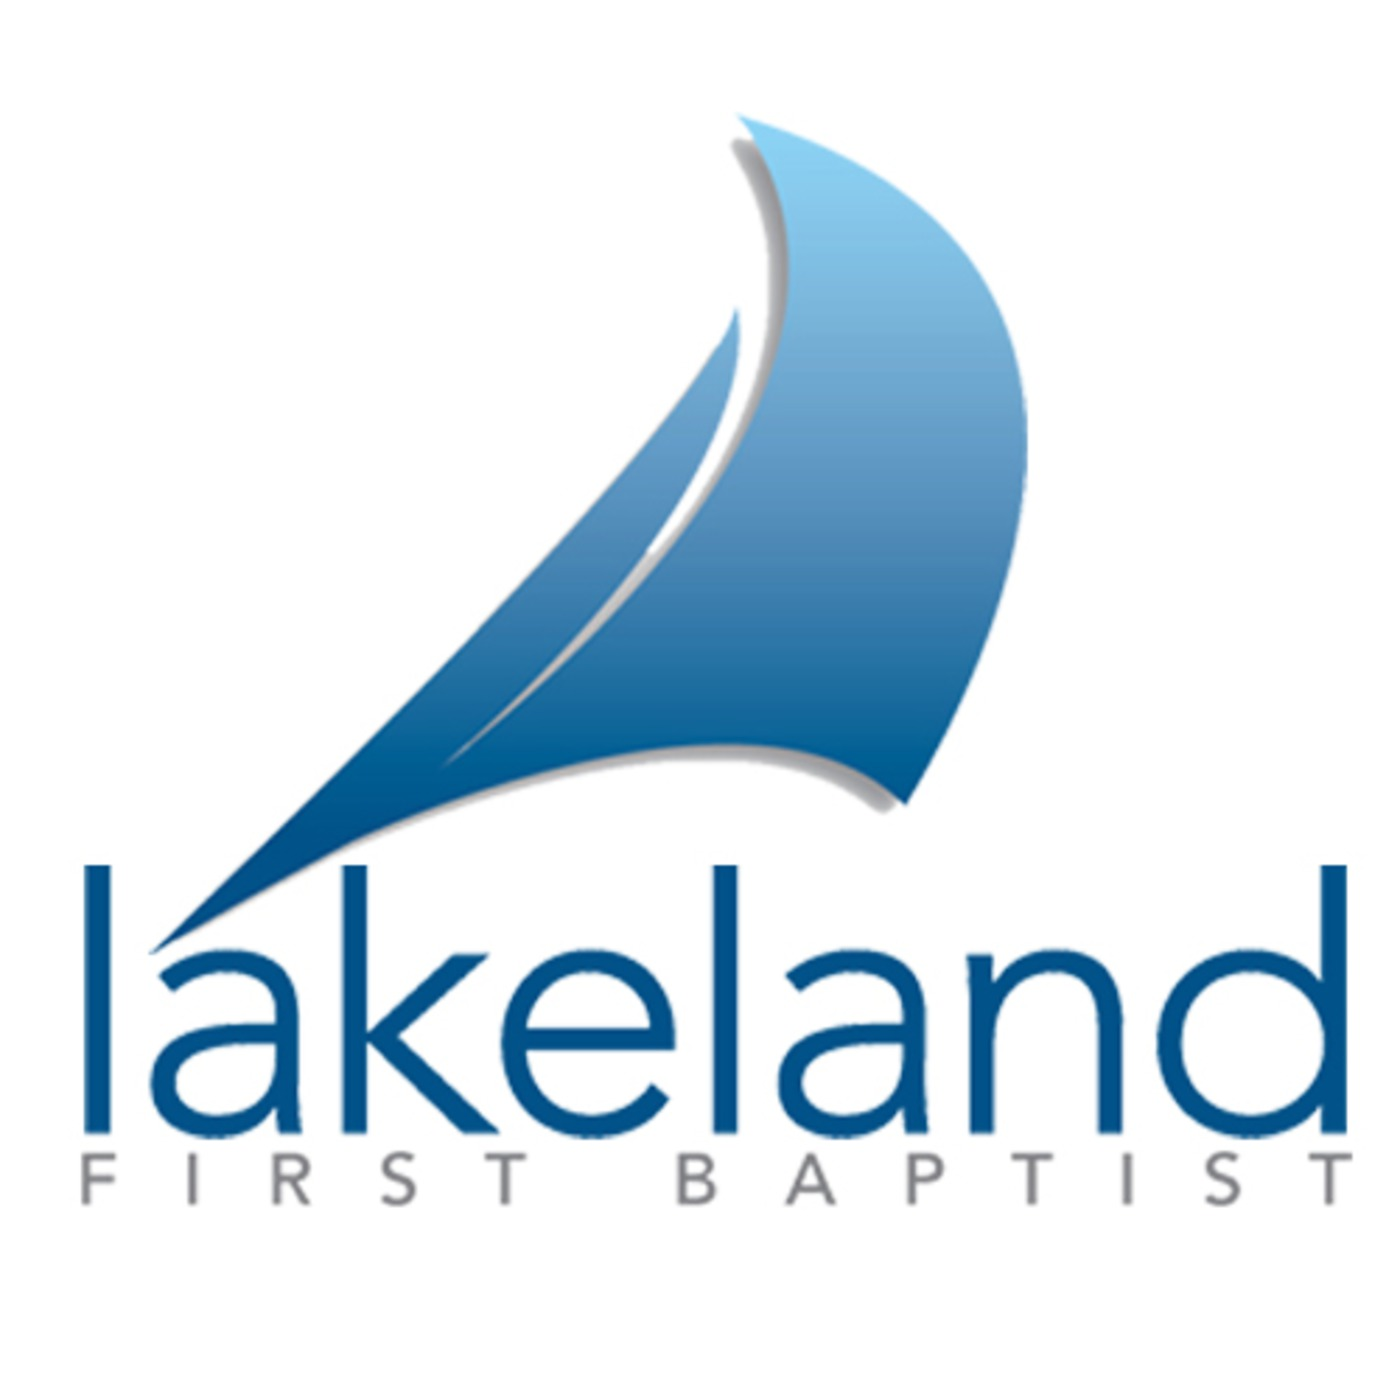 Lakeland First Baptist Podcast